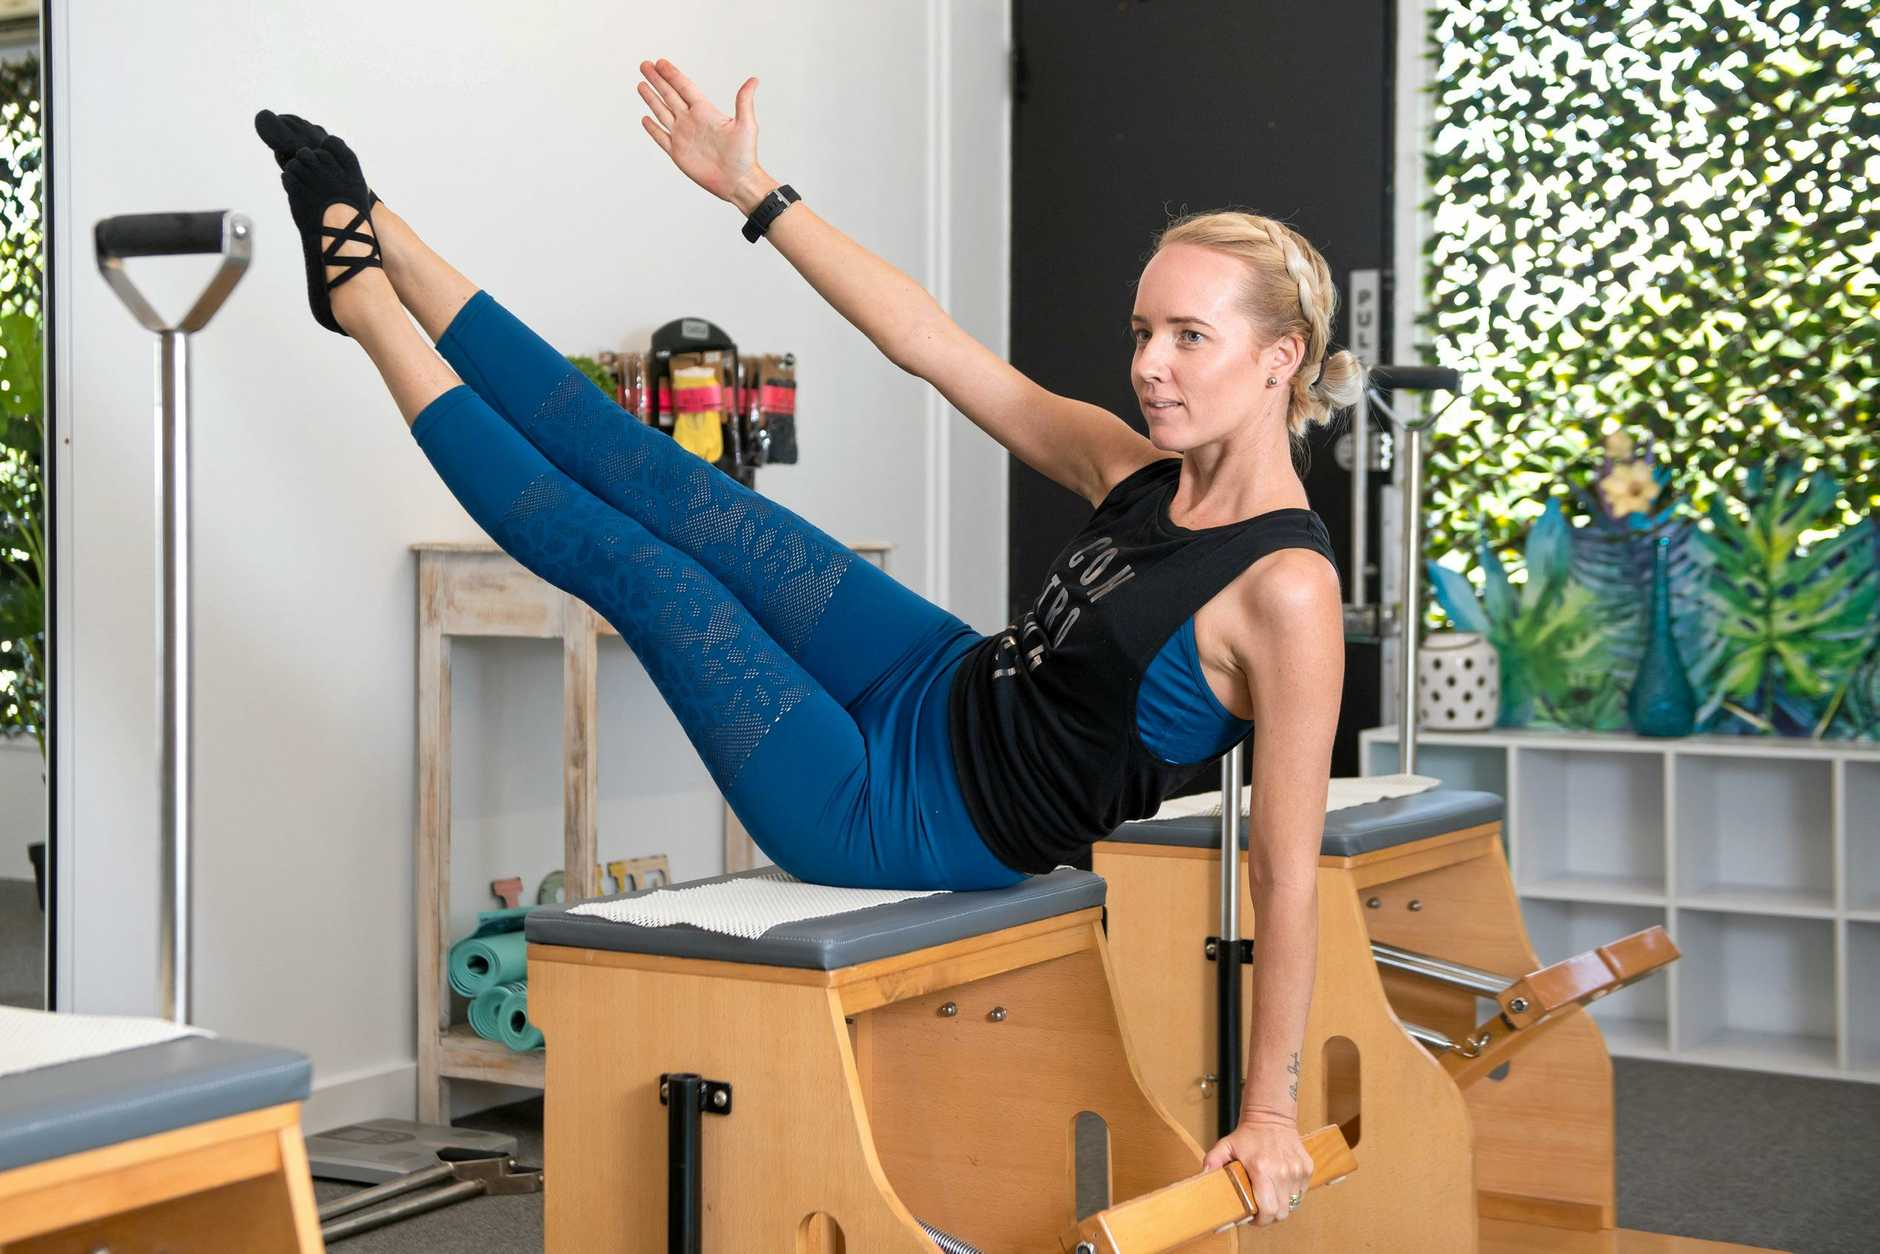 Unica Estabillo is one of the instructors at Pilates Addicts.